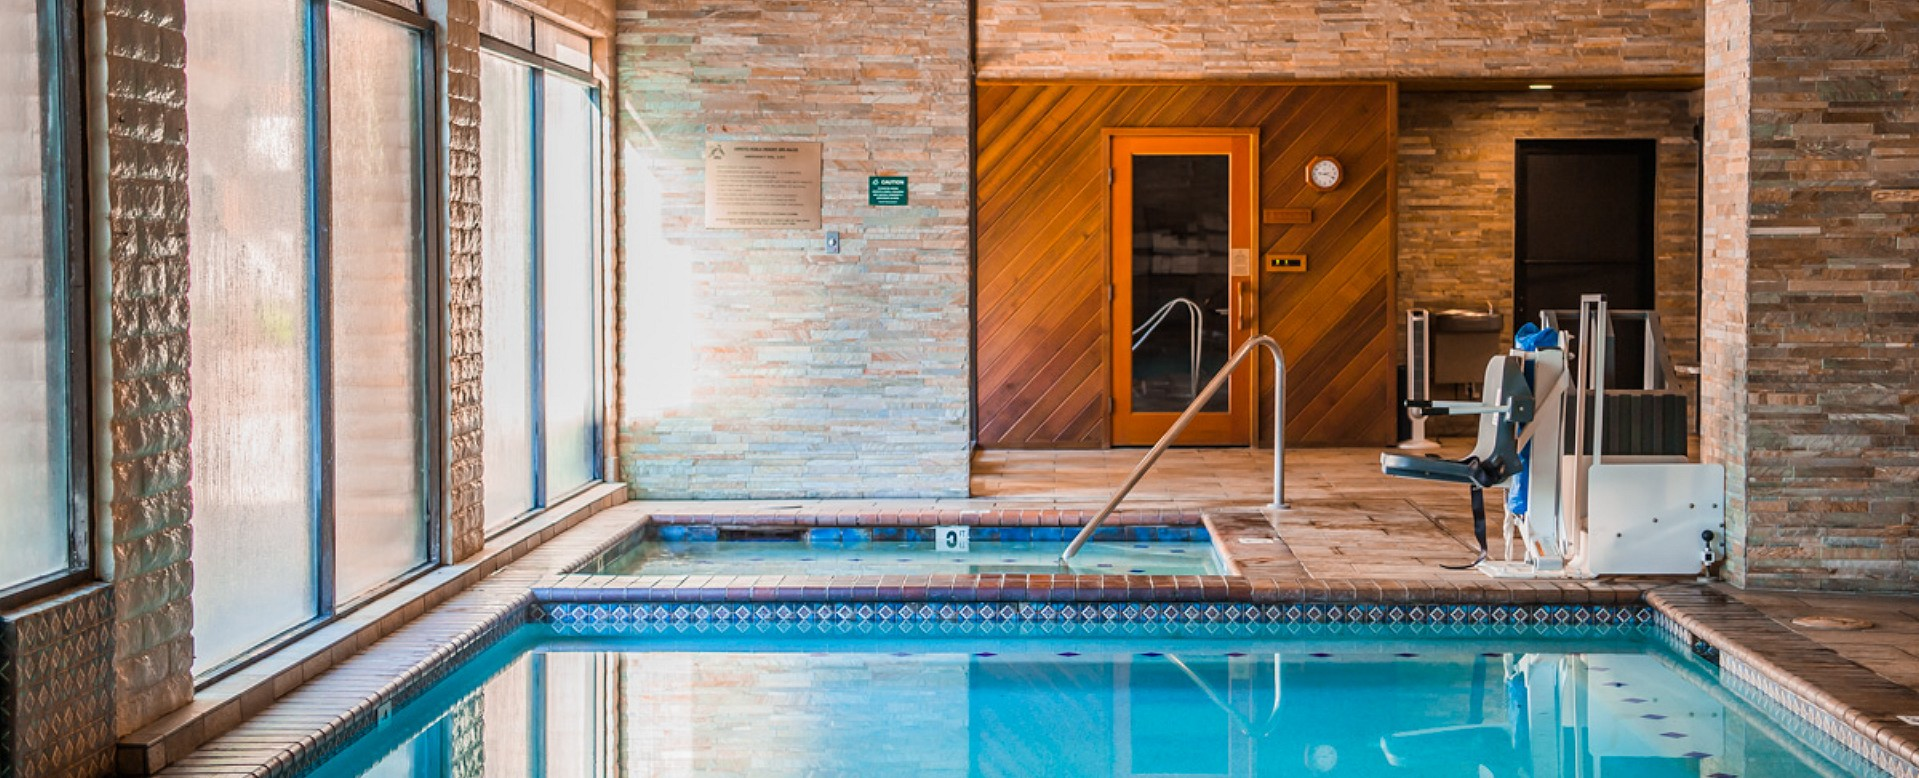 Best Western Plus Arroyo Roble Hotel - Indoor Pool